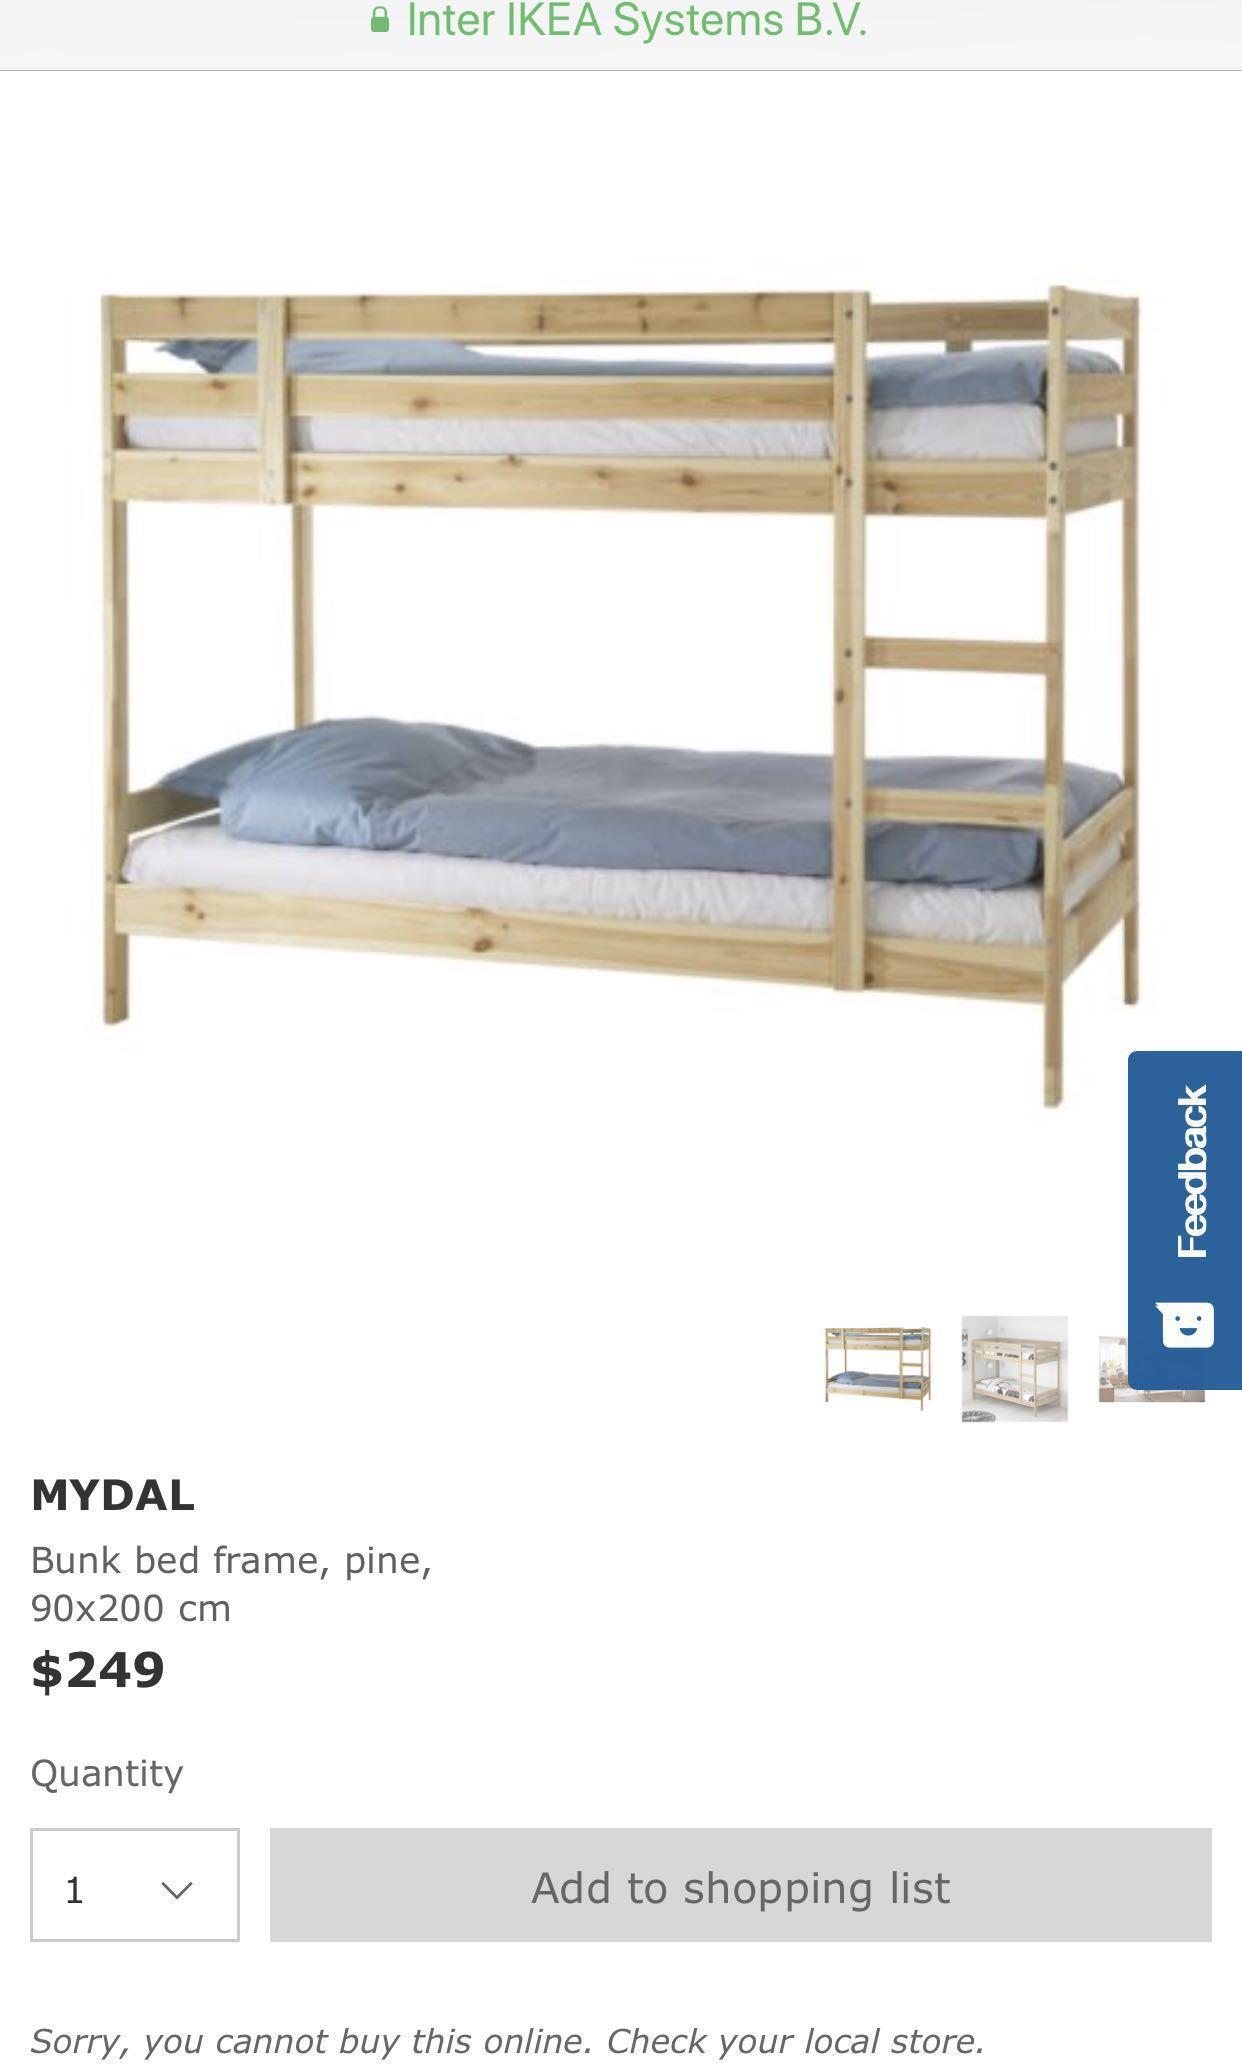 Ikea Mydal Single Size Bunk Bed With 2 Mattresses Delivery